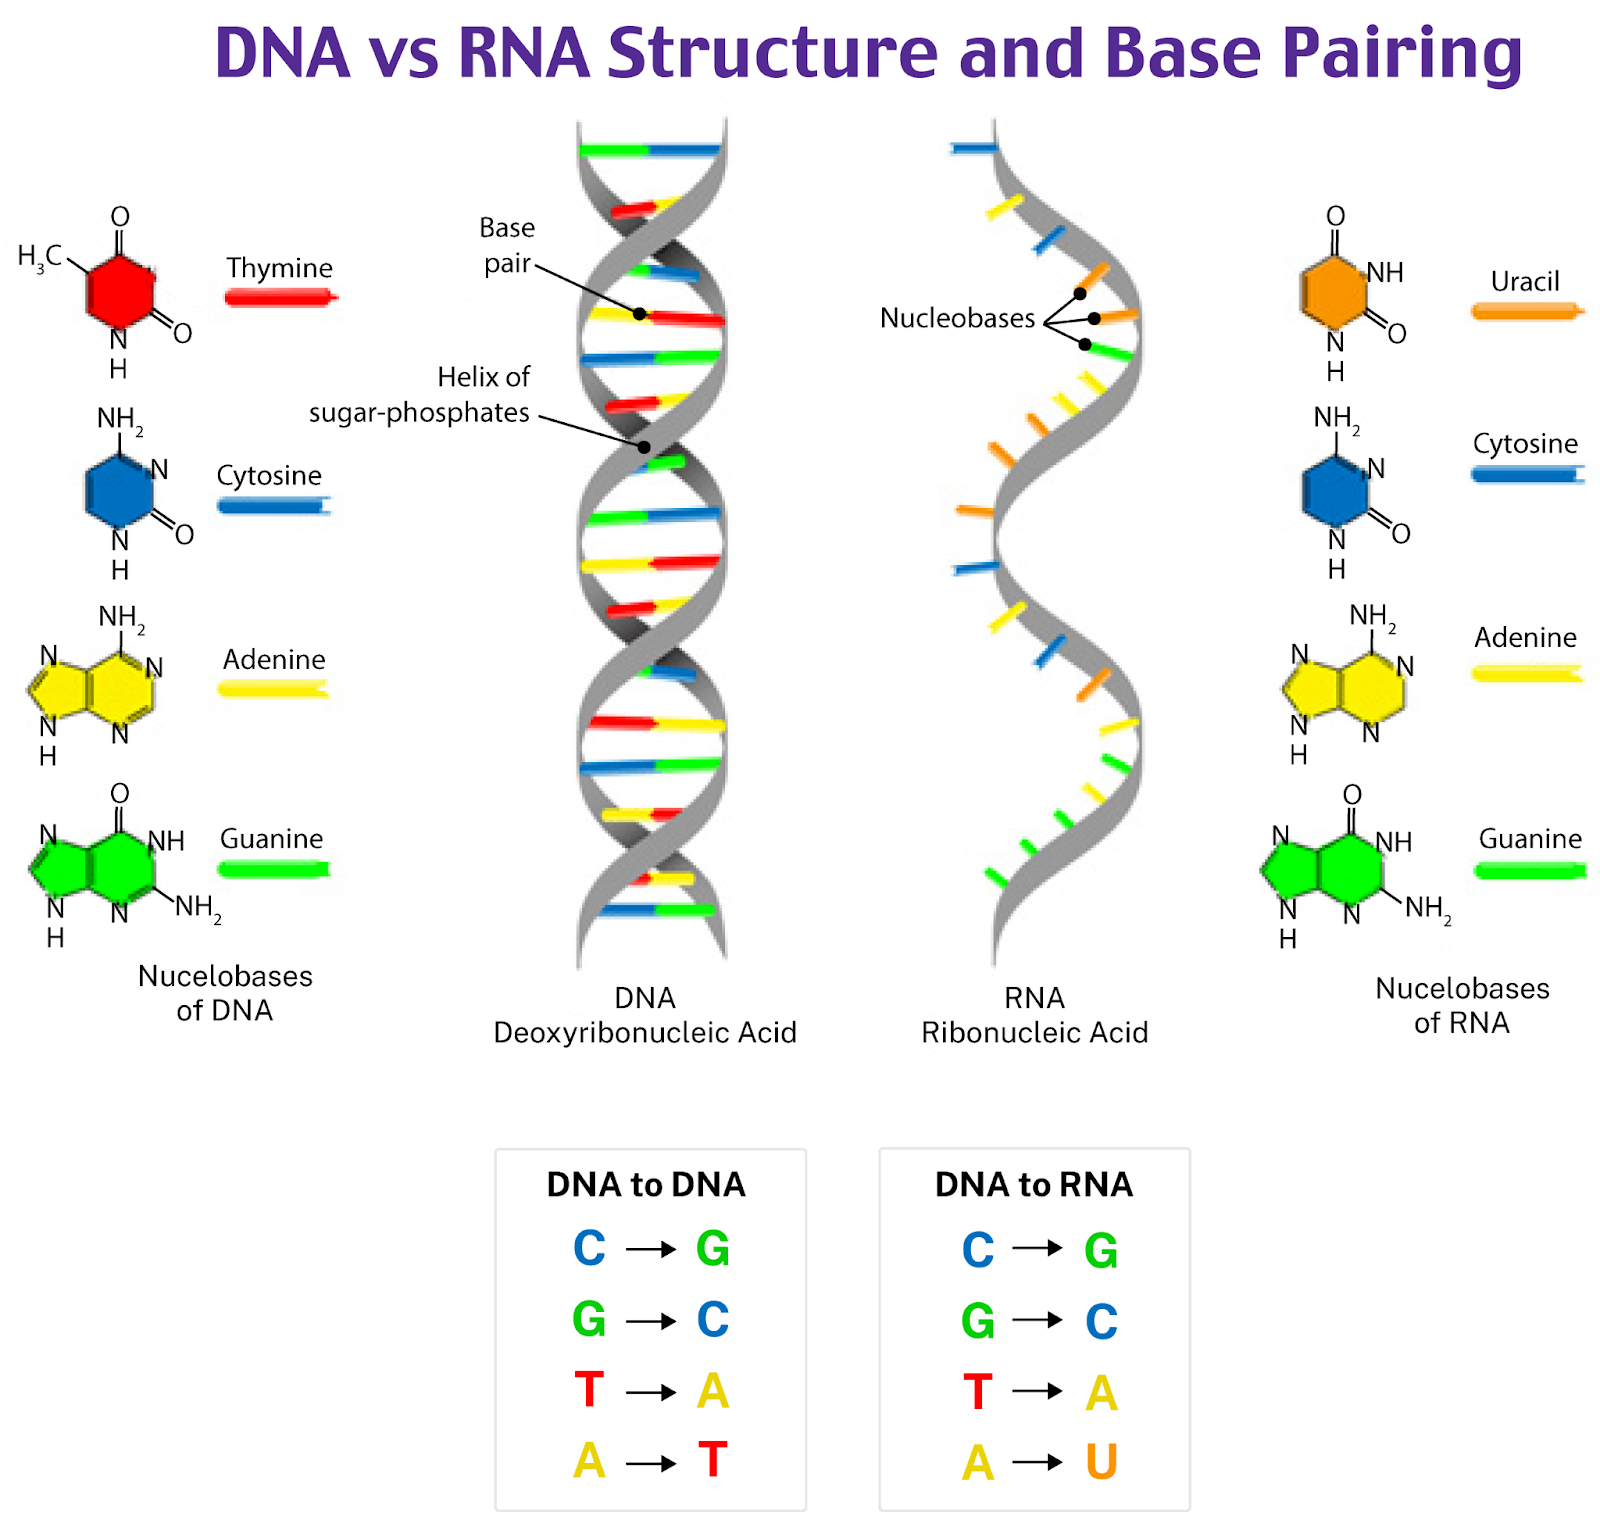 DNA vs RNA Structure and Base Pairing